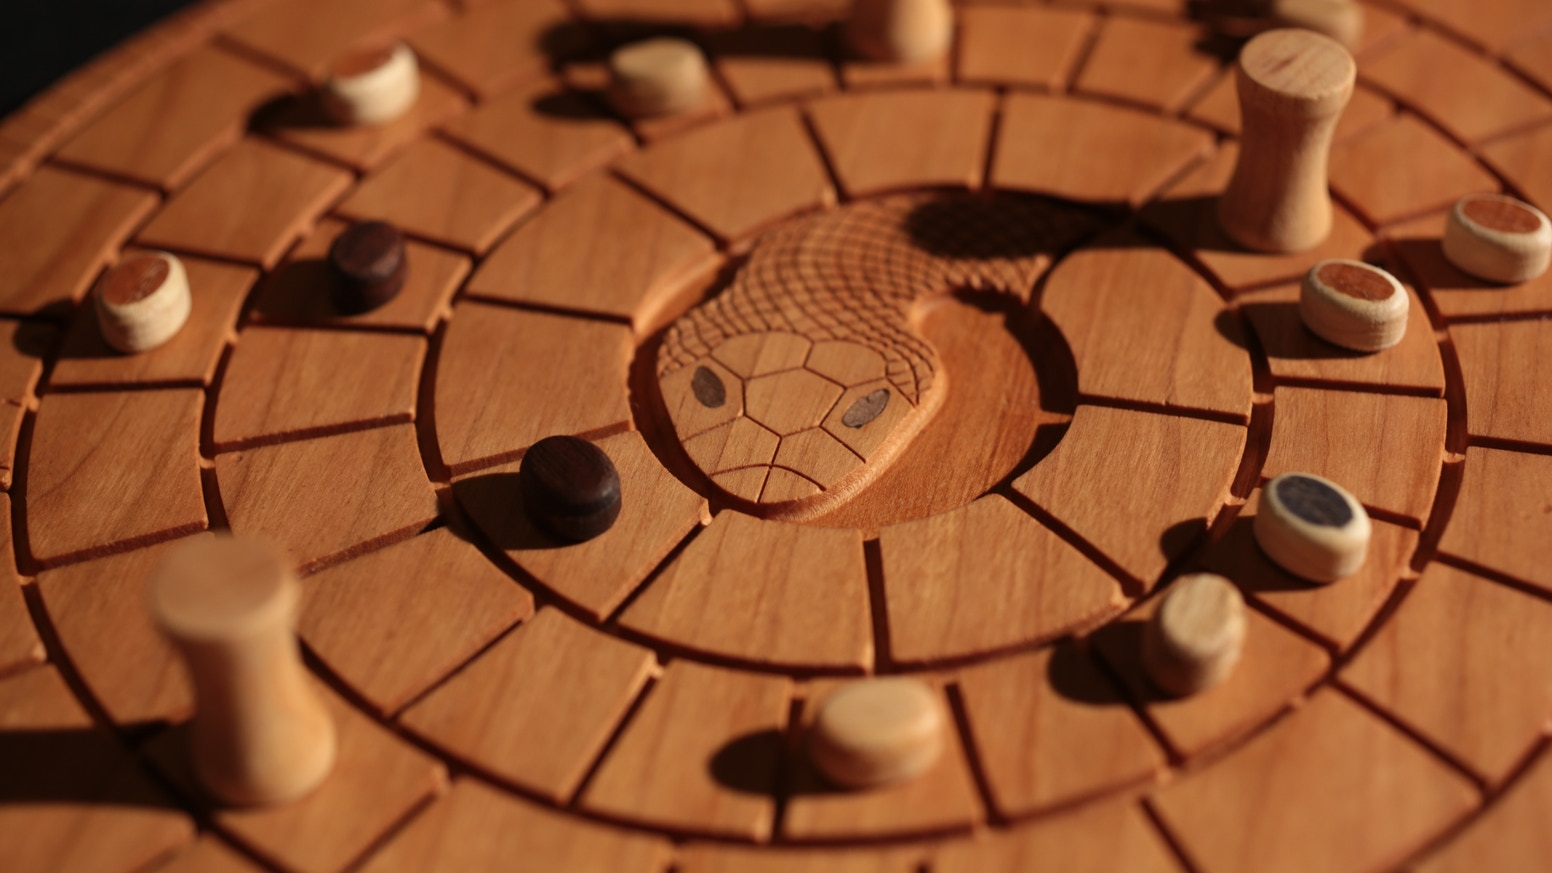 A 5,000 year old board game, brought back to life as a handcrafted collector's item